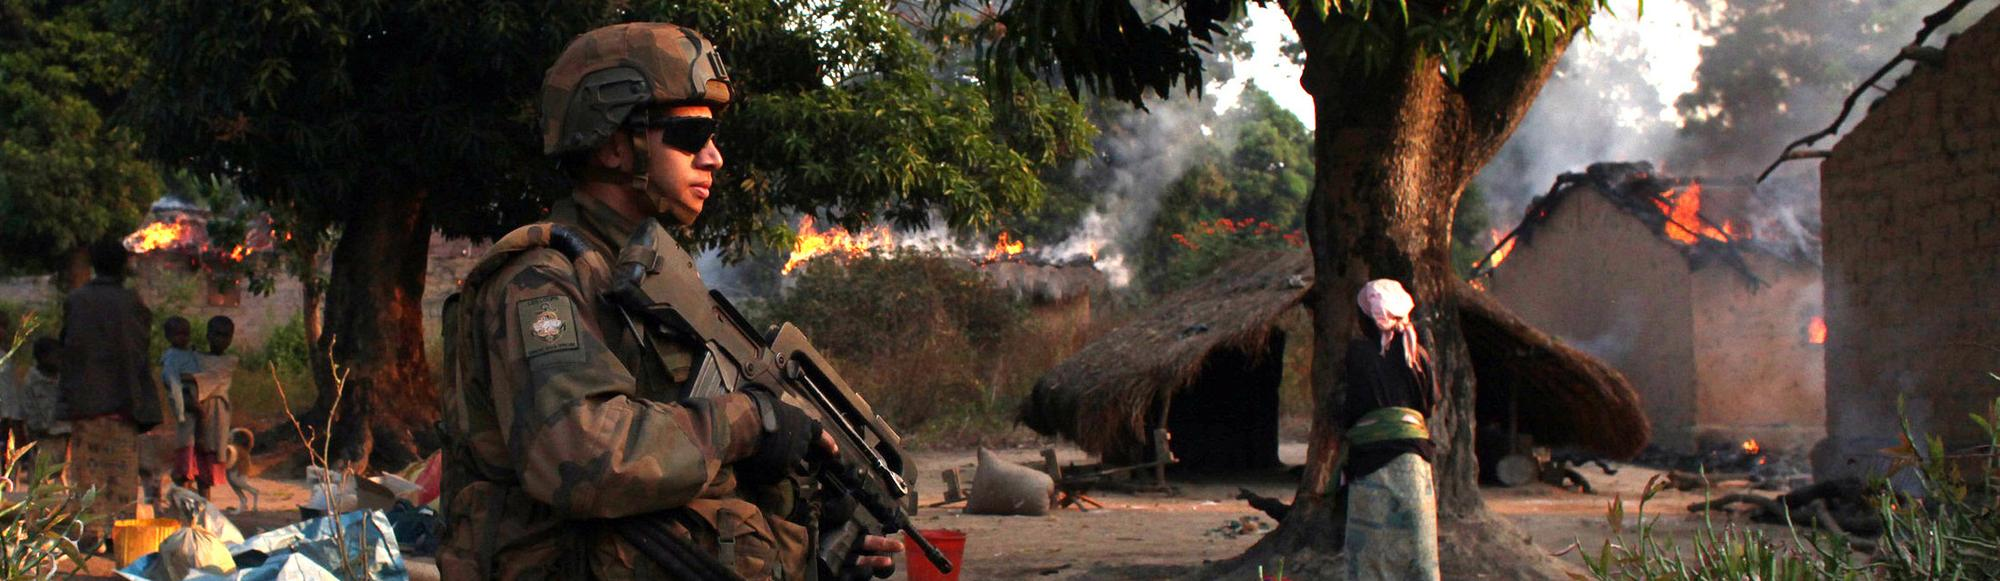 French Troops Face Another Sexual Abuse Allegation in the Central African Republic